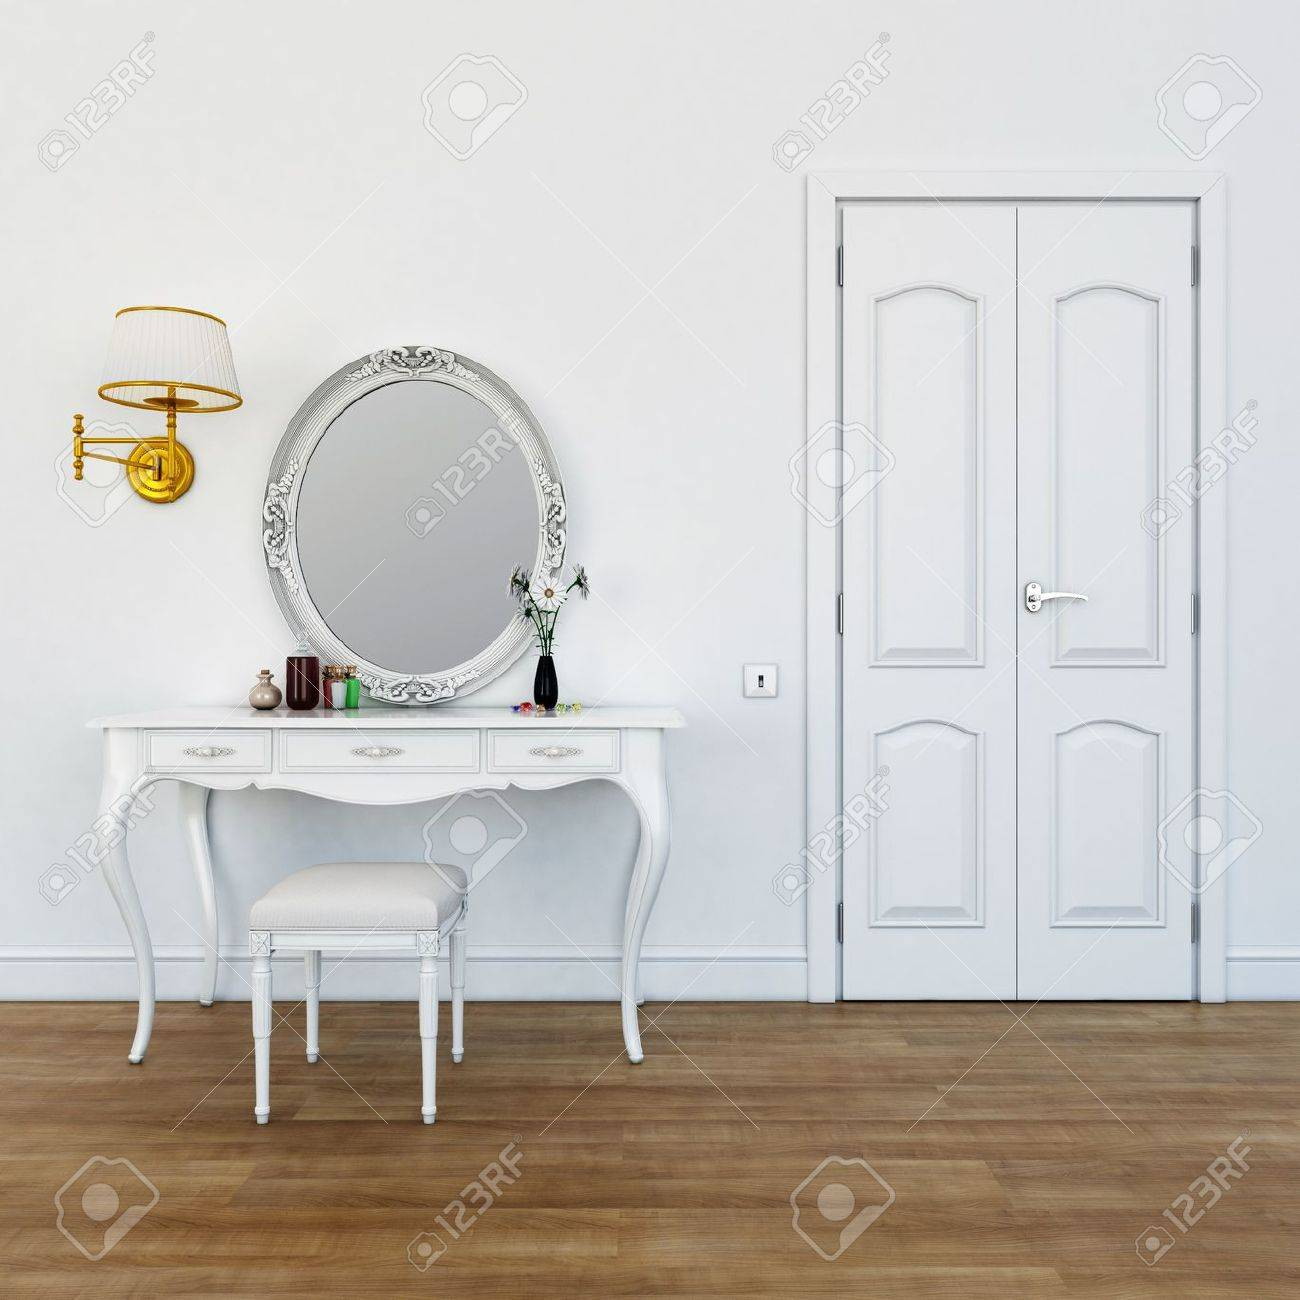 dressing table with make-up colors Stock Photo - 12761427